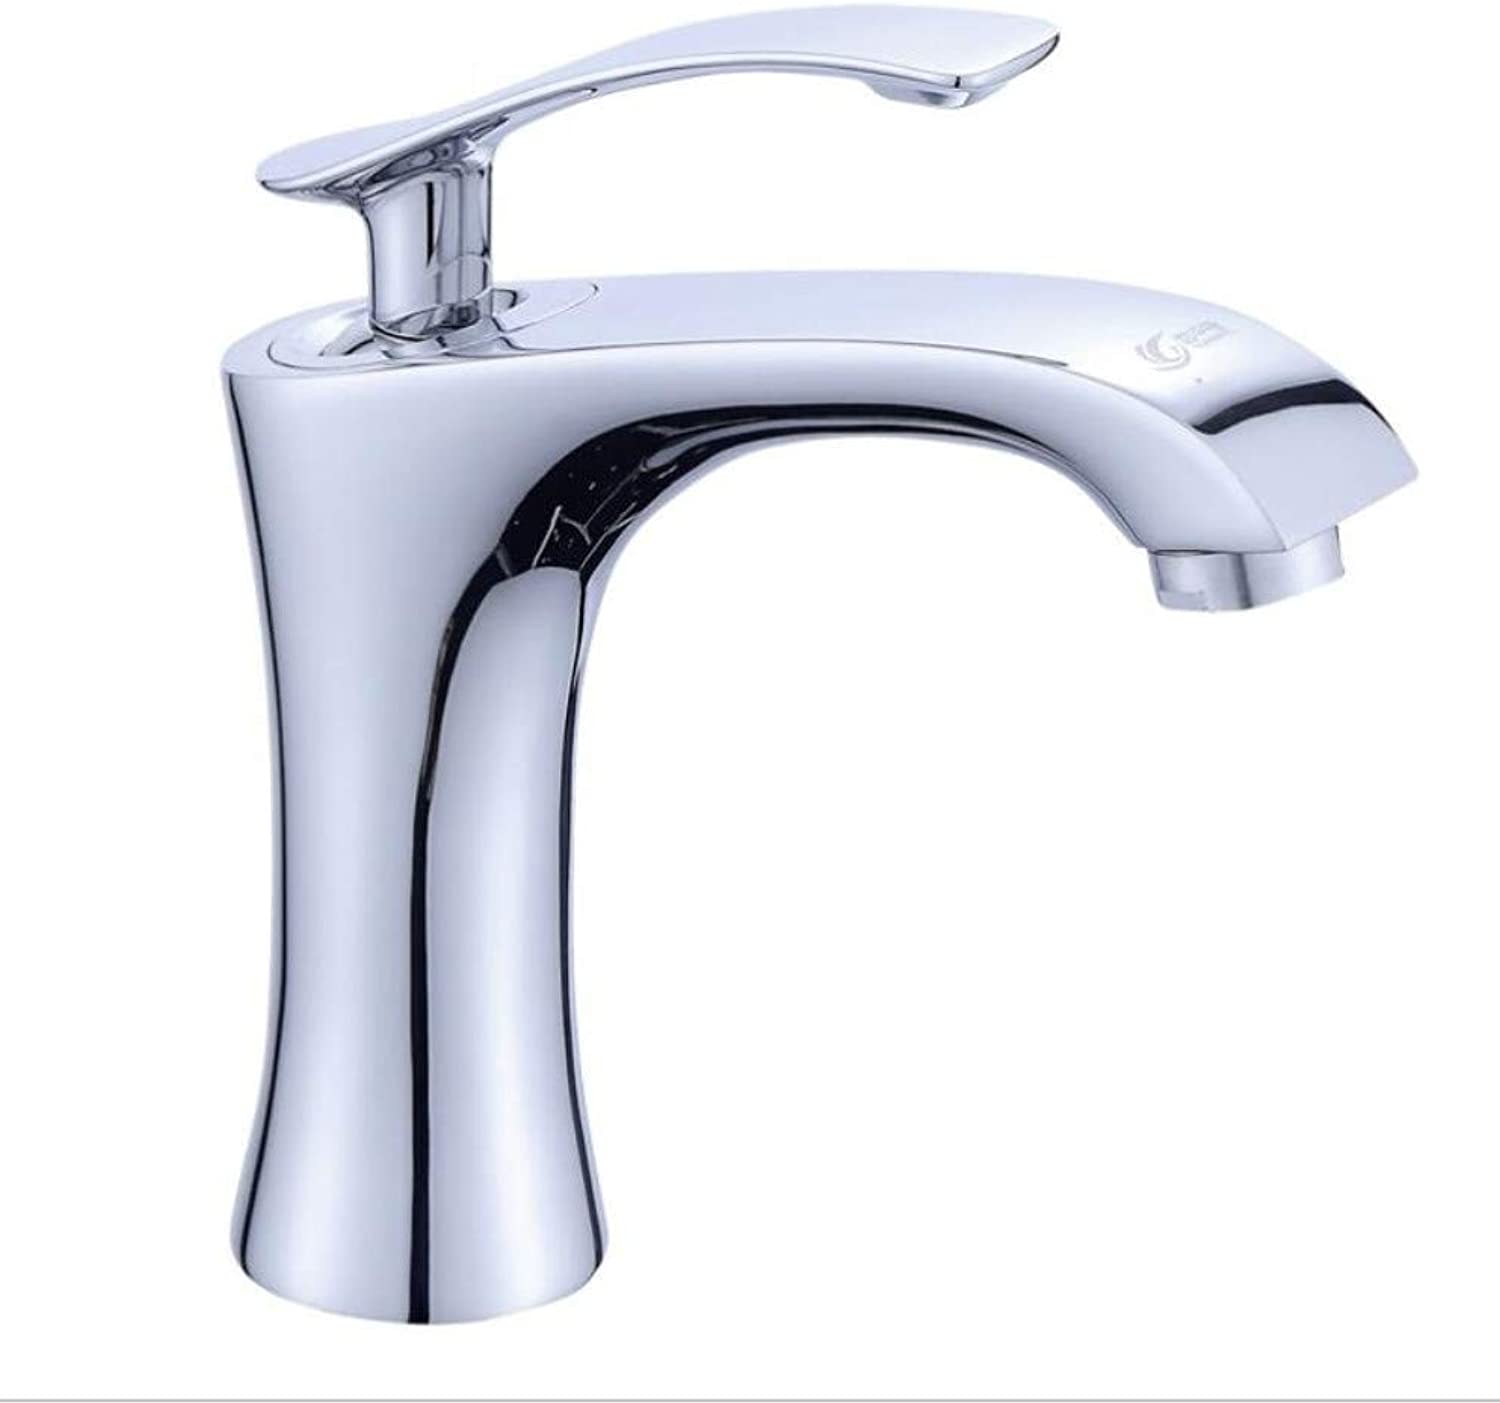 Basin Faucet Taps Basin Mixer Waterfall Bathroom Chrome Cold Water Deck Mounted